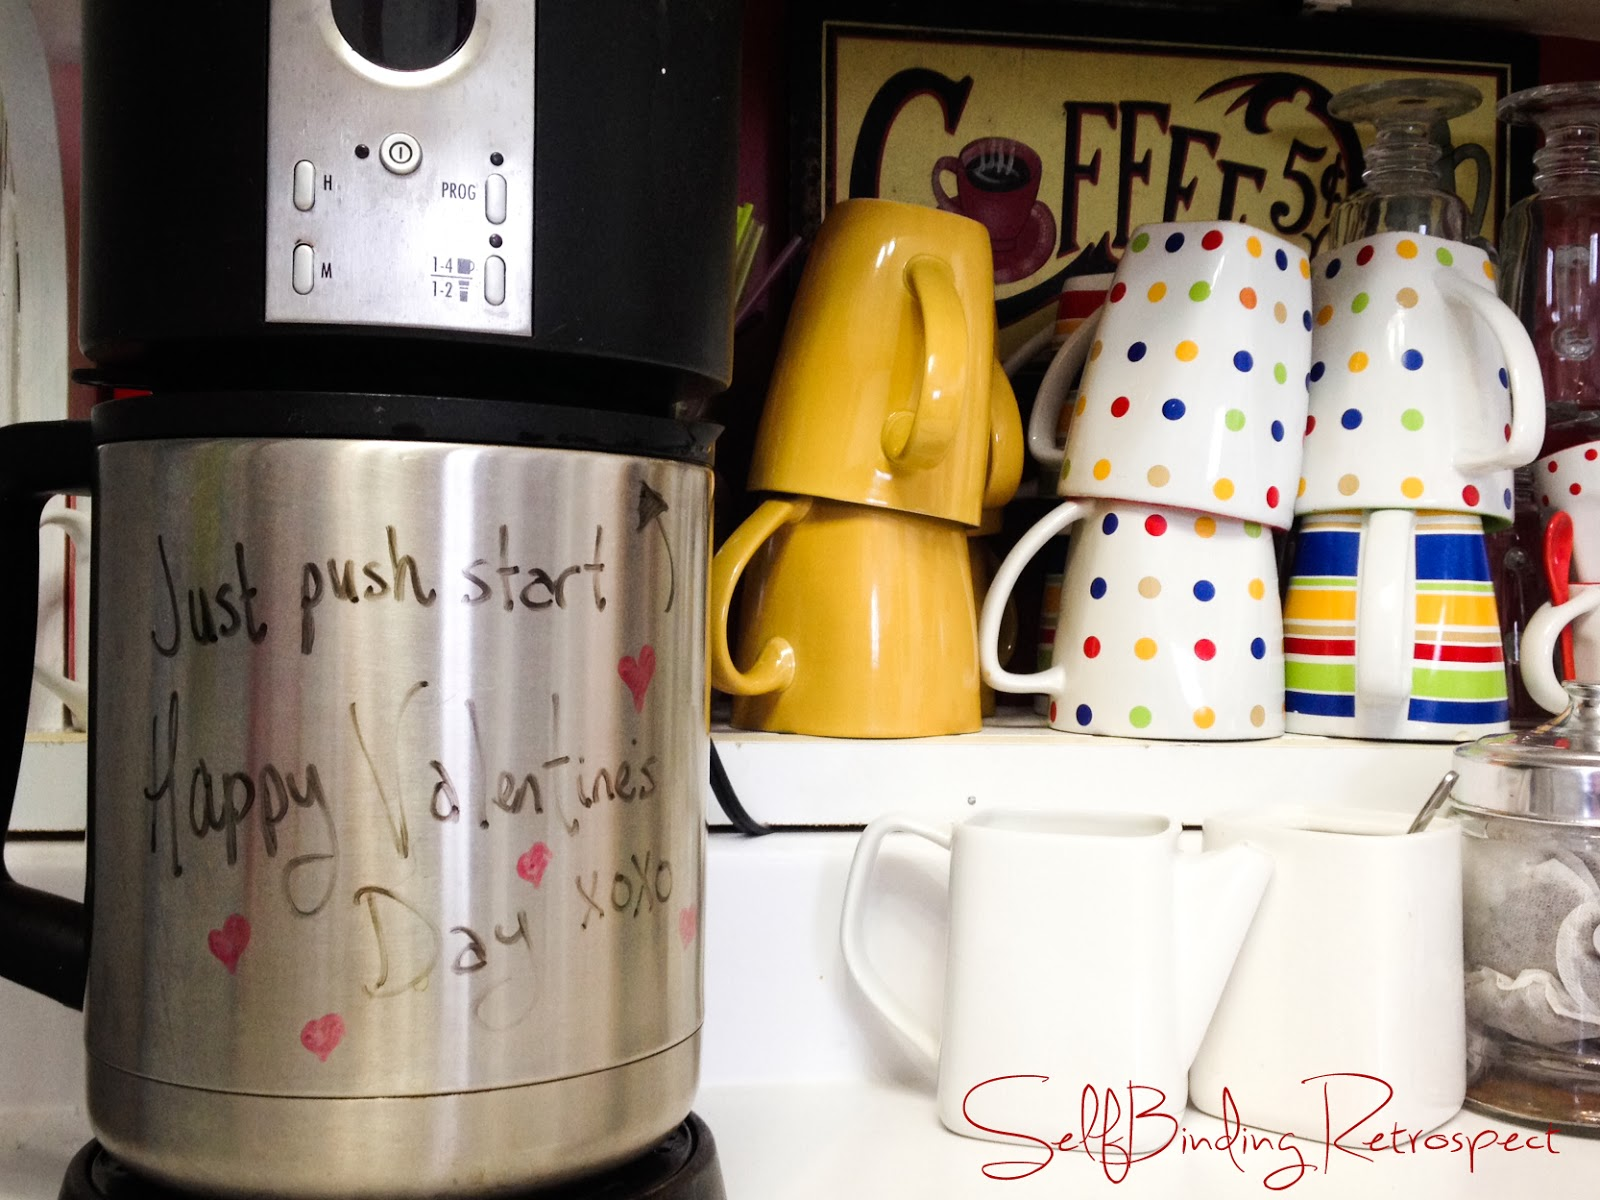 coffee maker, happy valentine's day message